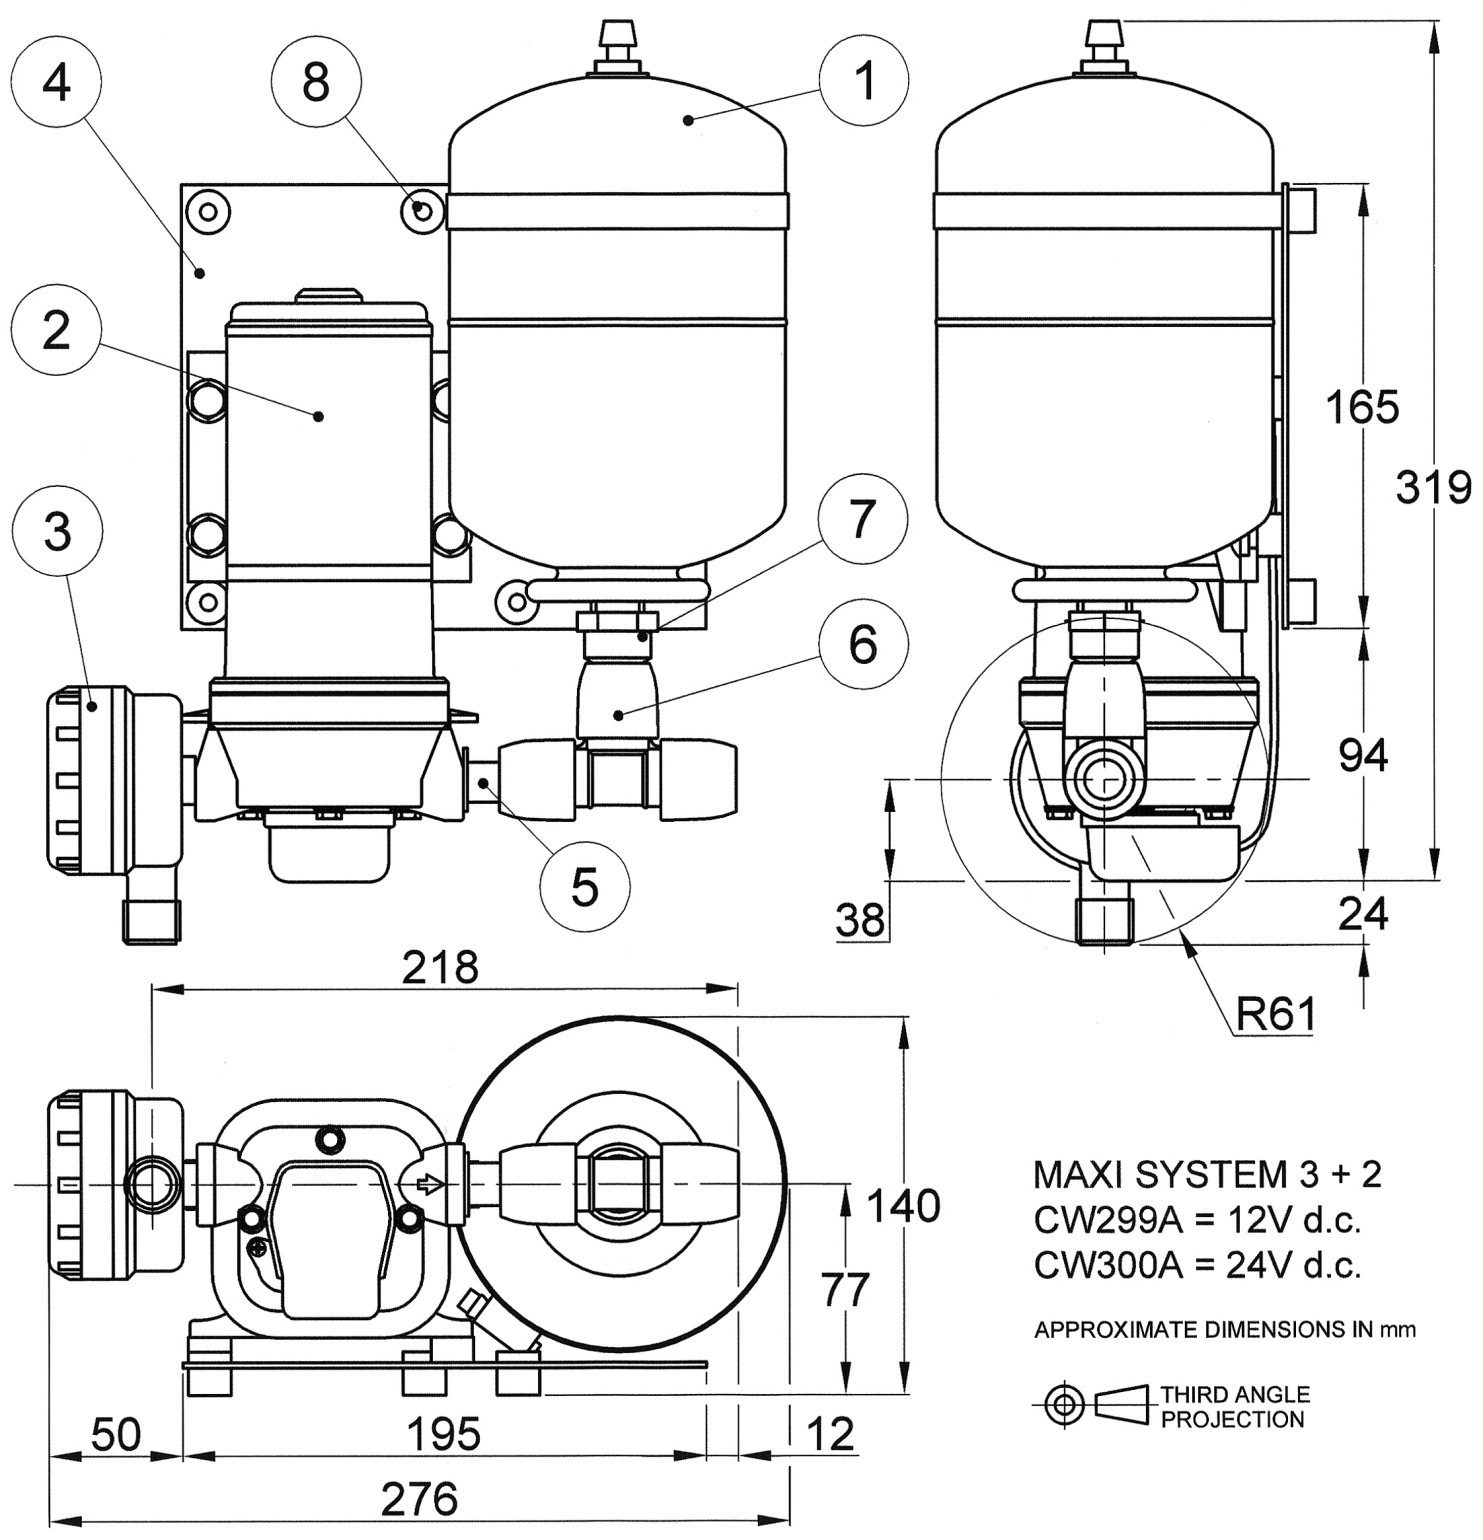 Cw299a Maxi System 3 Pressure Single Pump Sets Flojet Wiring Diagram Diaphragm Systems Xylem Jabscoshop Jabsco Rule Pumps And More From